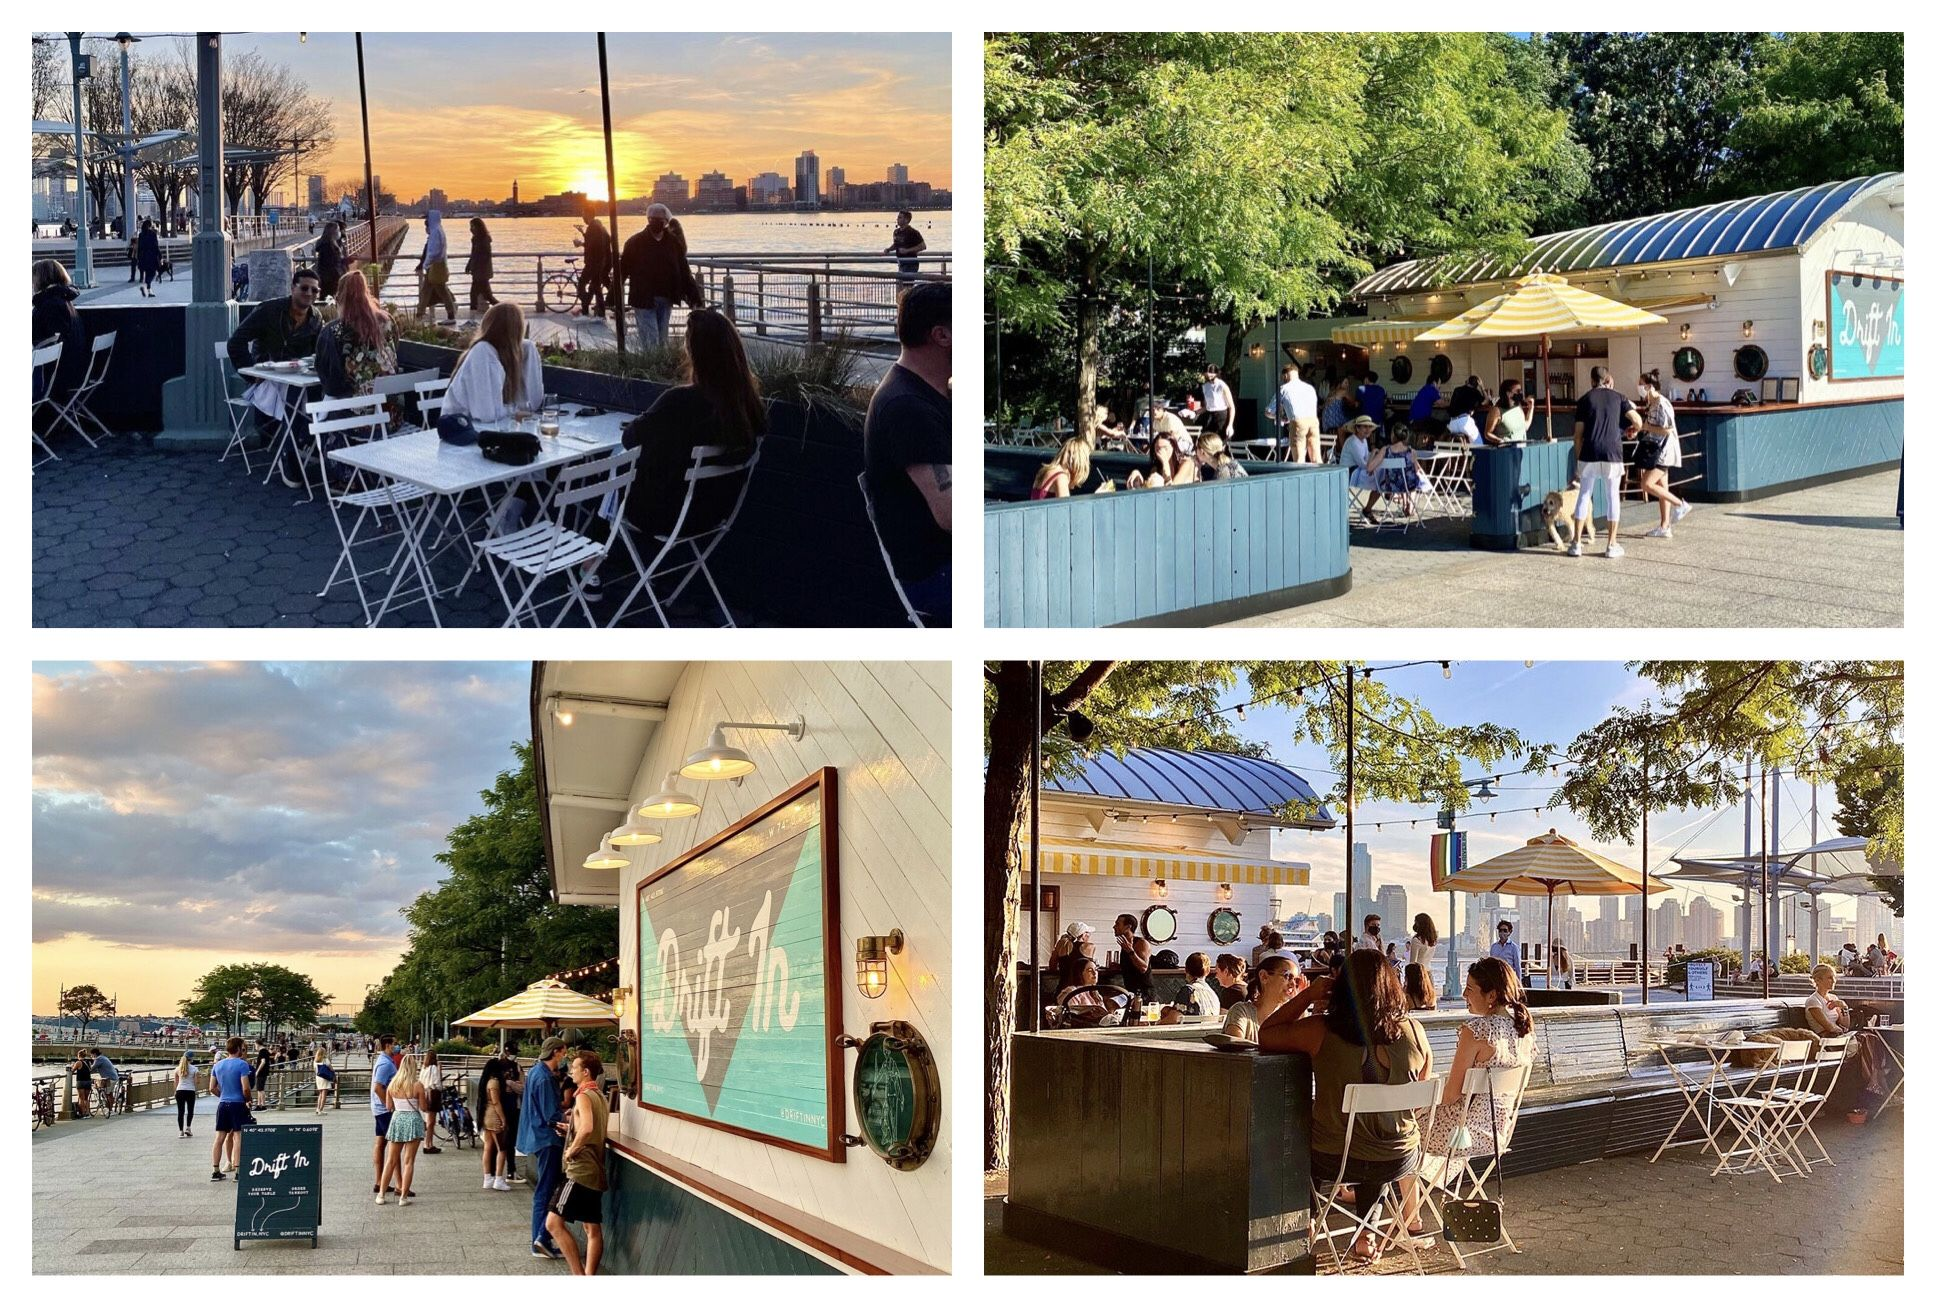 390 Restaurants Dining In Style In Nyc Ideas In 2021 Nyc Restaurant Dining